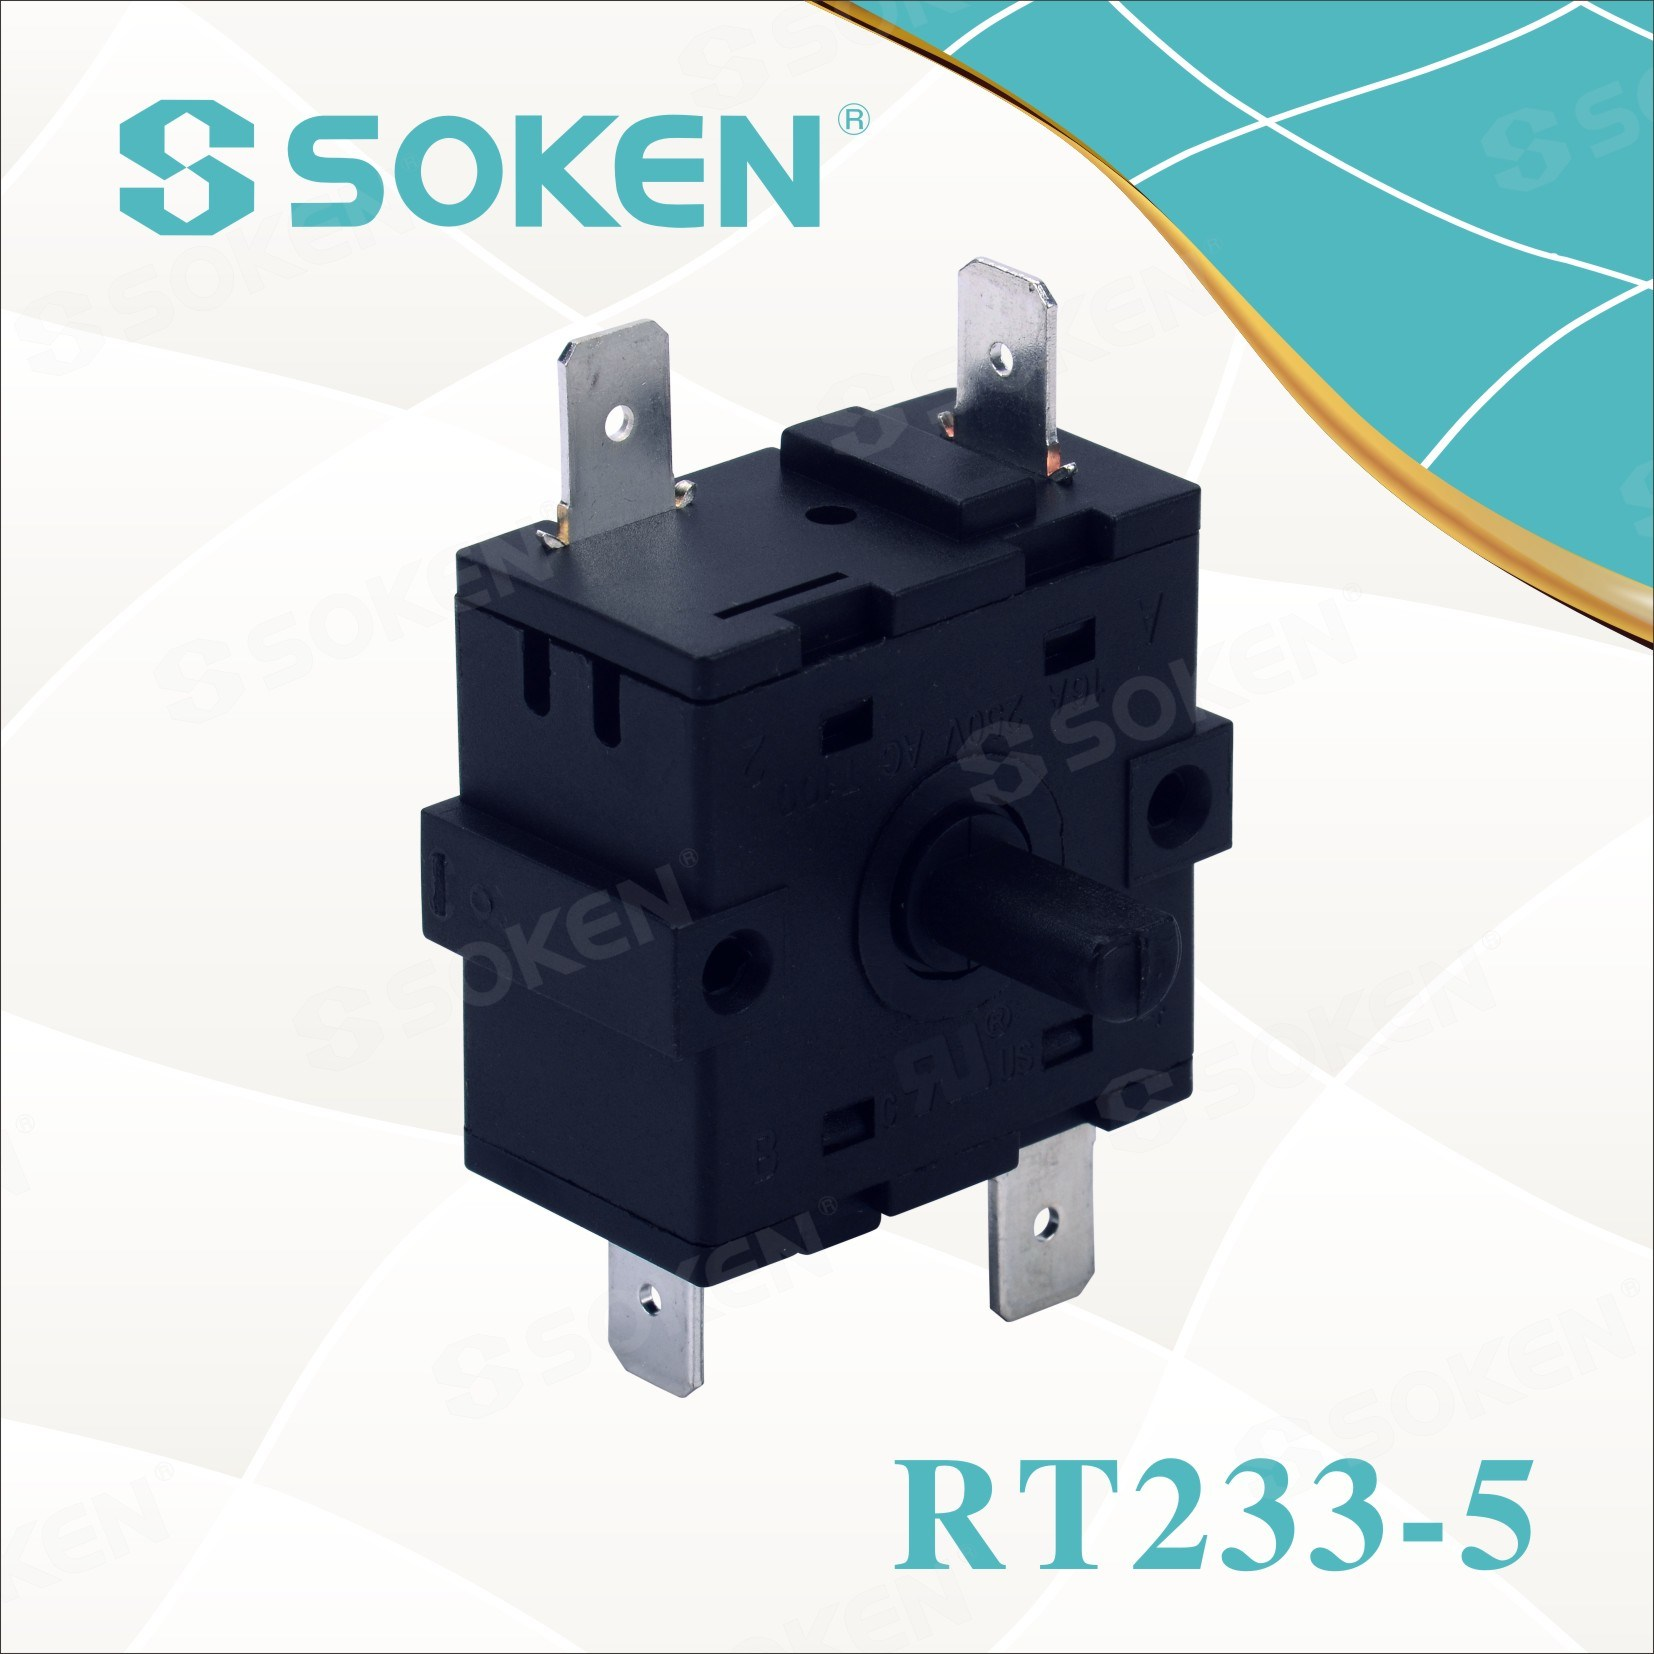 Patio Soken Aquarium Heater SWITCH PB Gyratorius